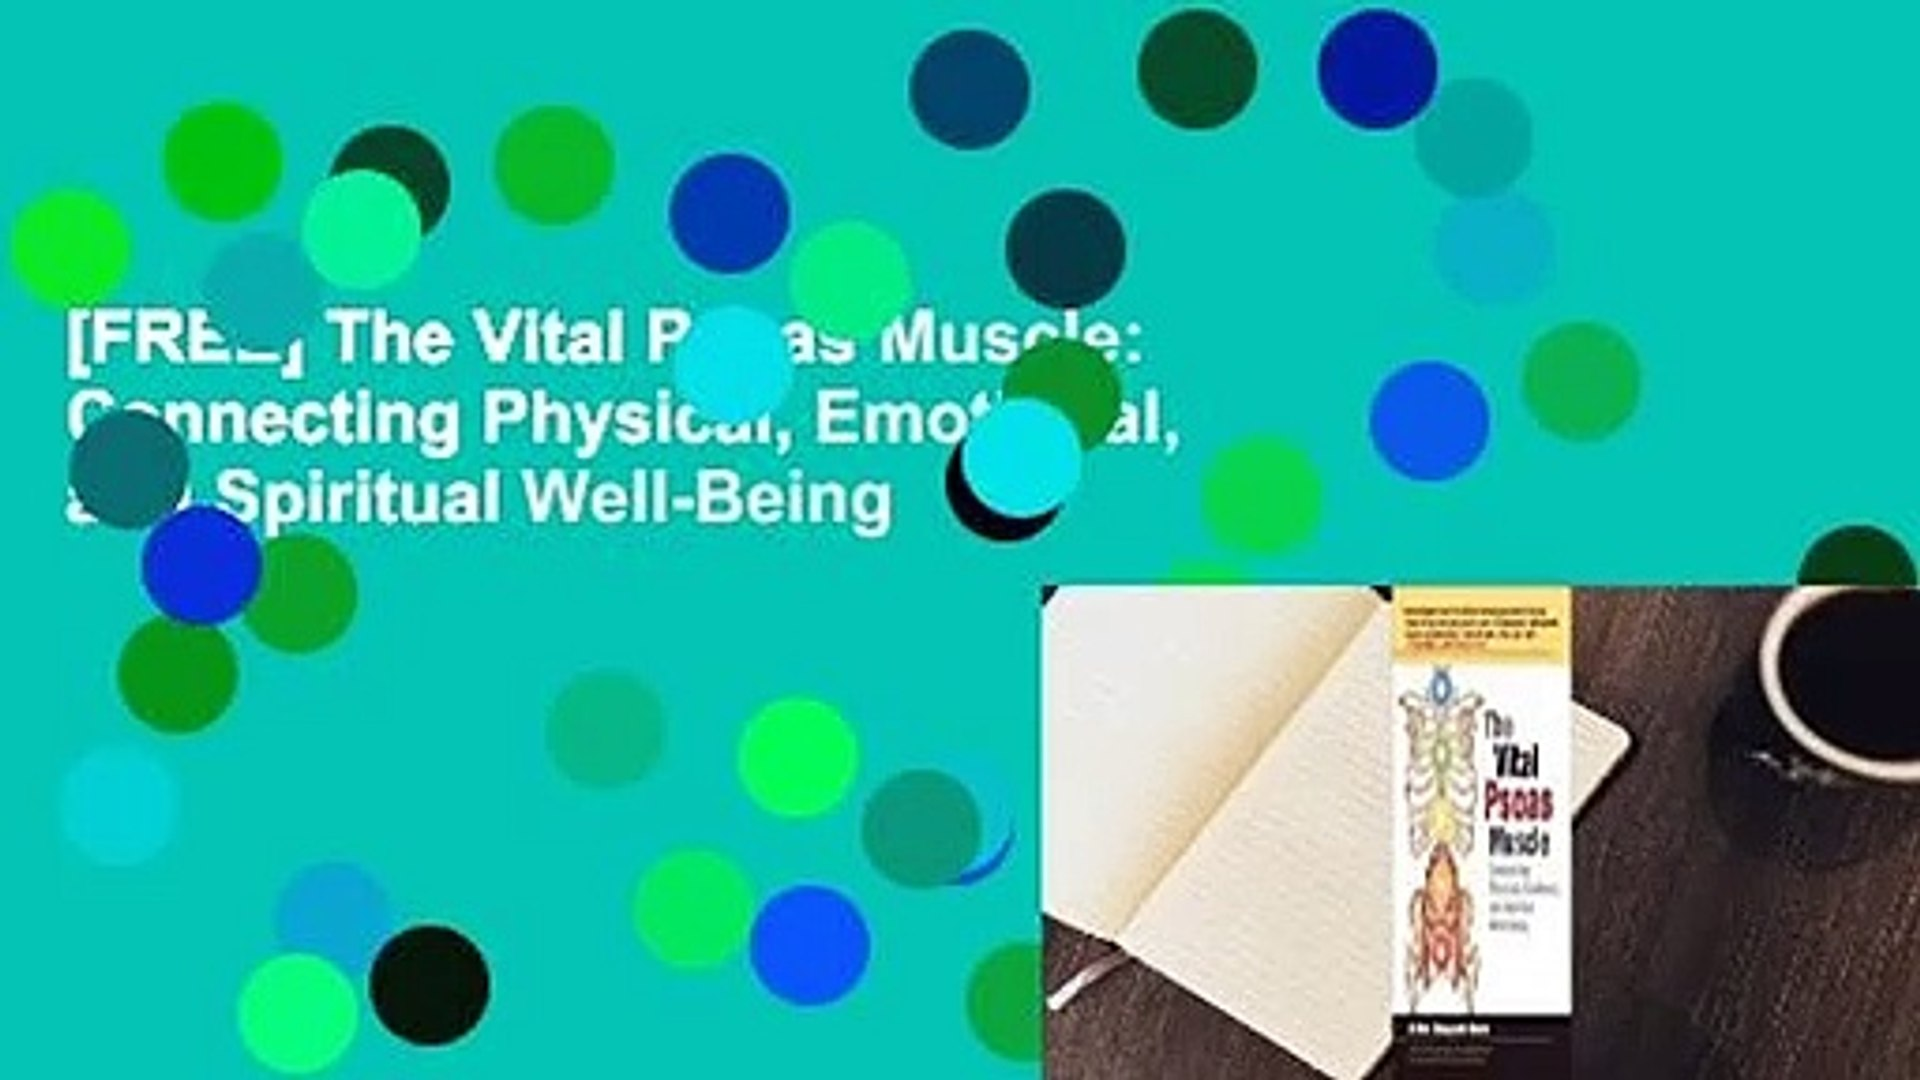 [FREE] The Vital Psoas Muscle: Connecting Physical, Emotional, and Spiritual Well-Being